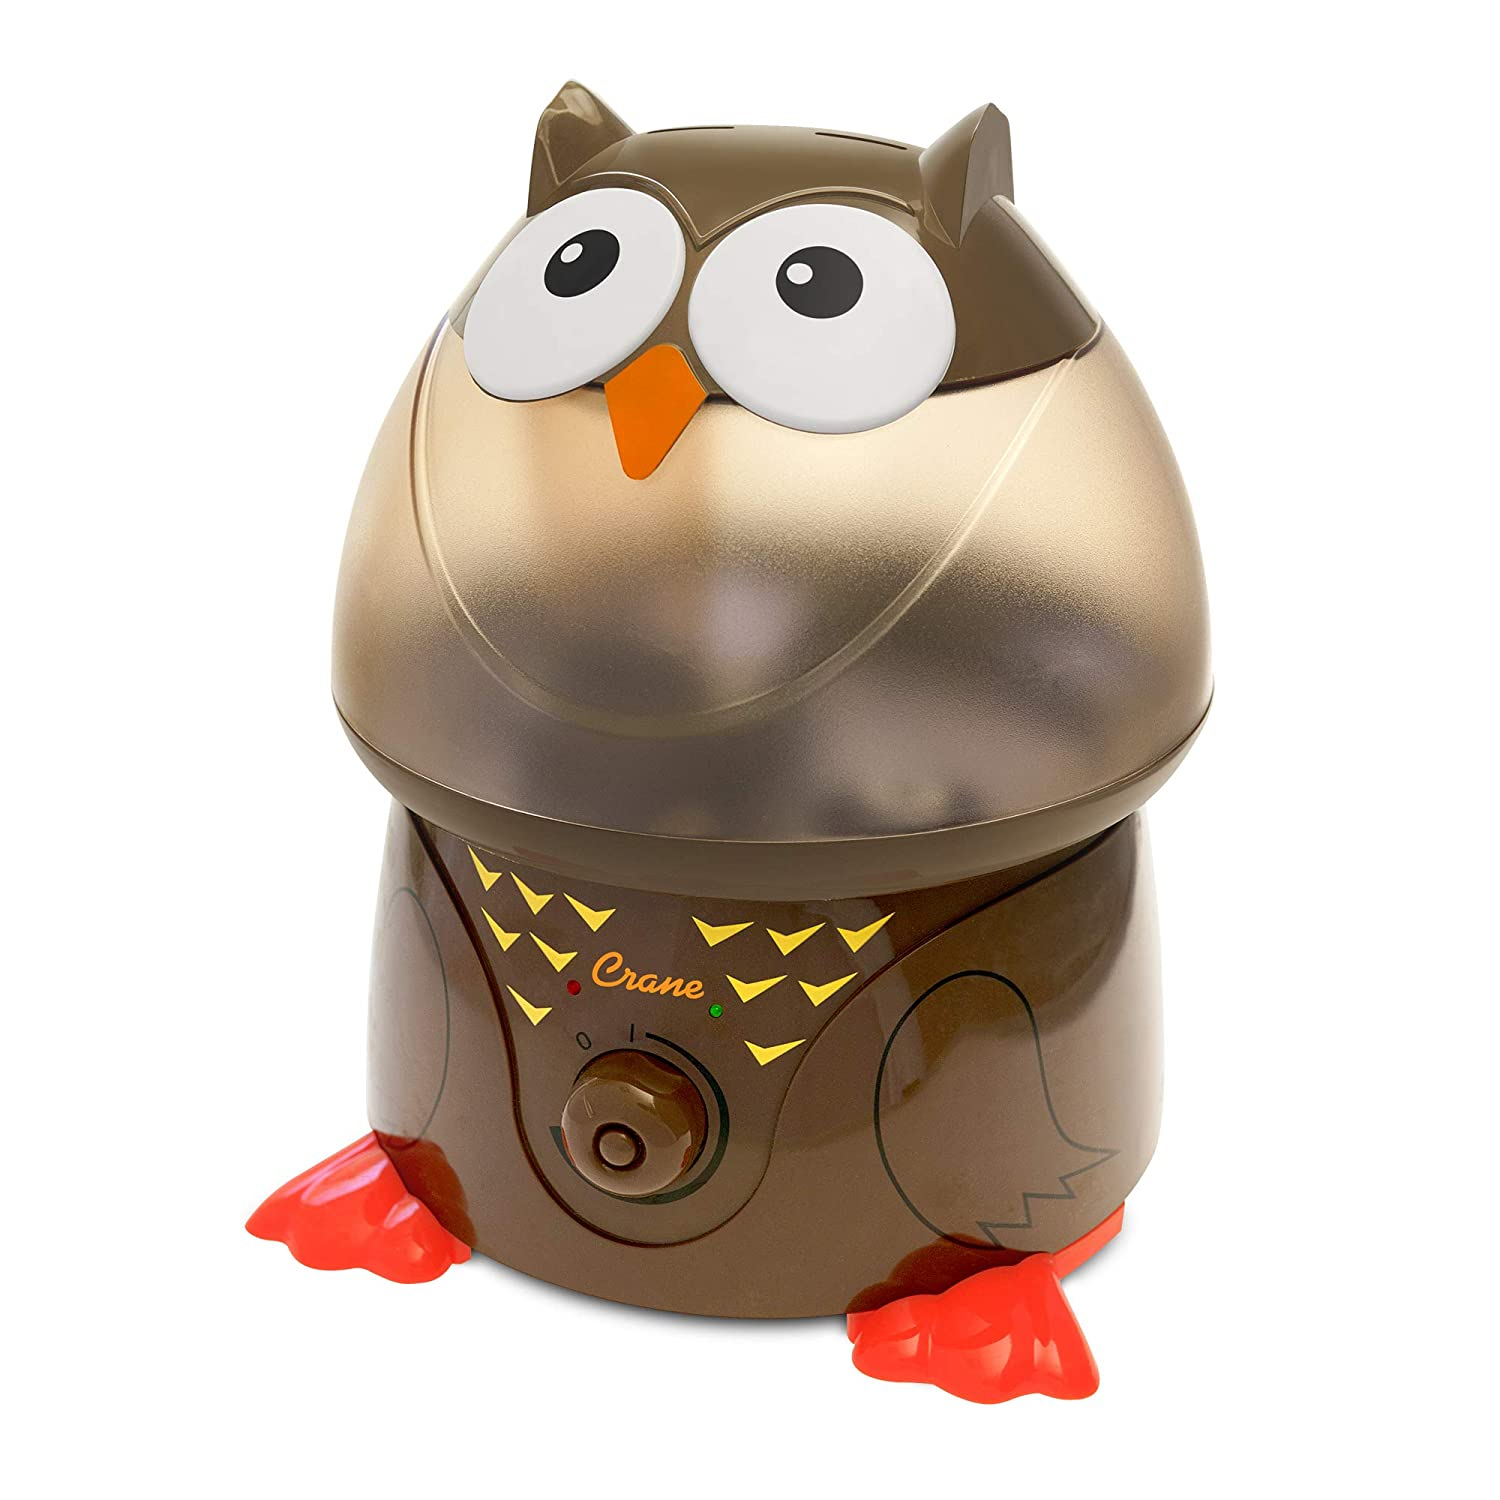 Crane USA Humidifiers Owl Adorable Ultrasonic Cool Mist Humidifier 1 Gallon Adjustable Mist Output, Automatic Shut off, Whisper Quiet Operation